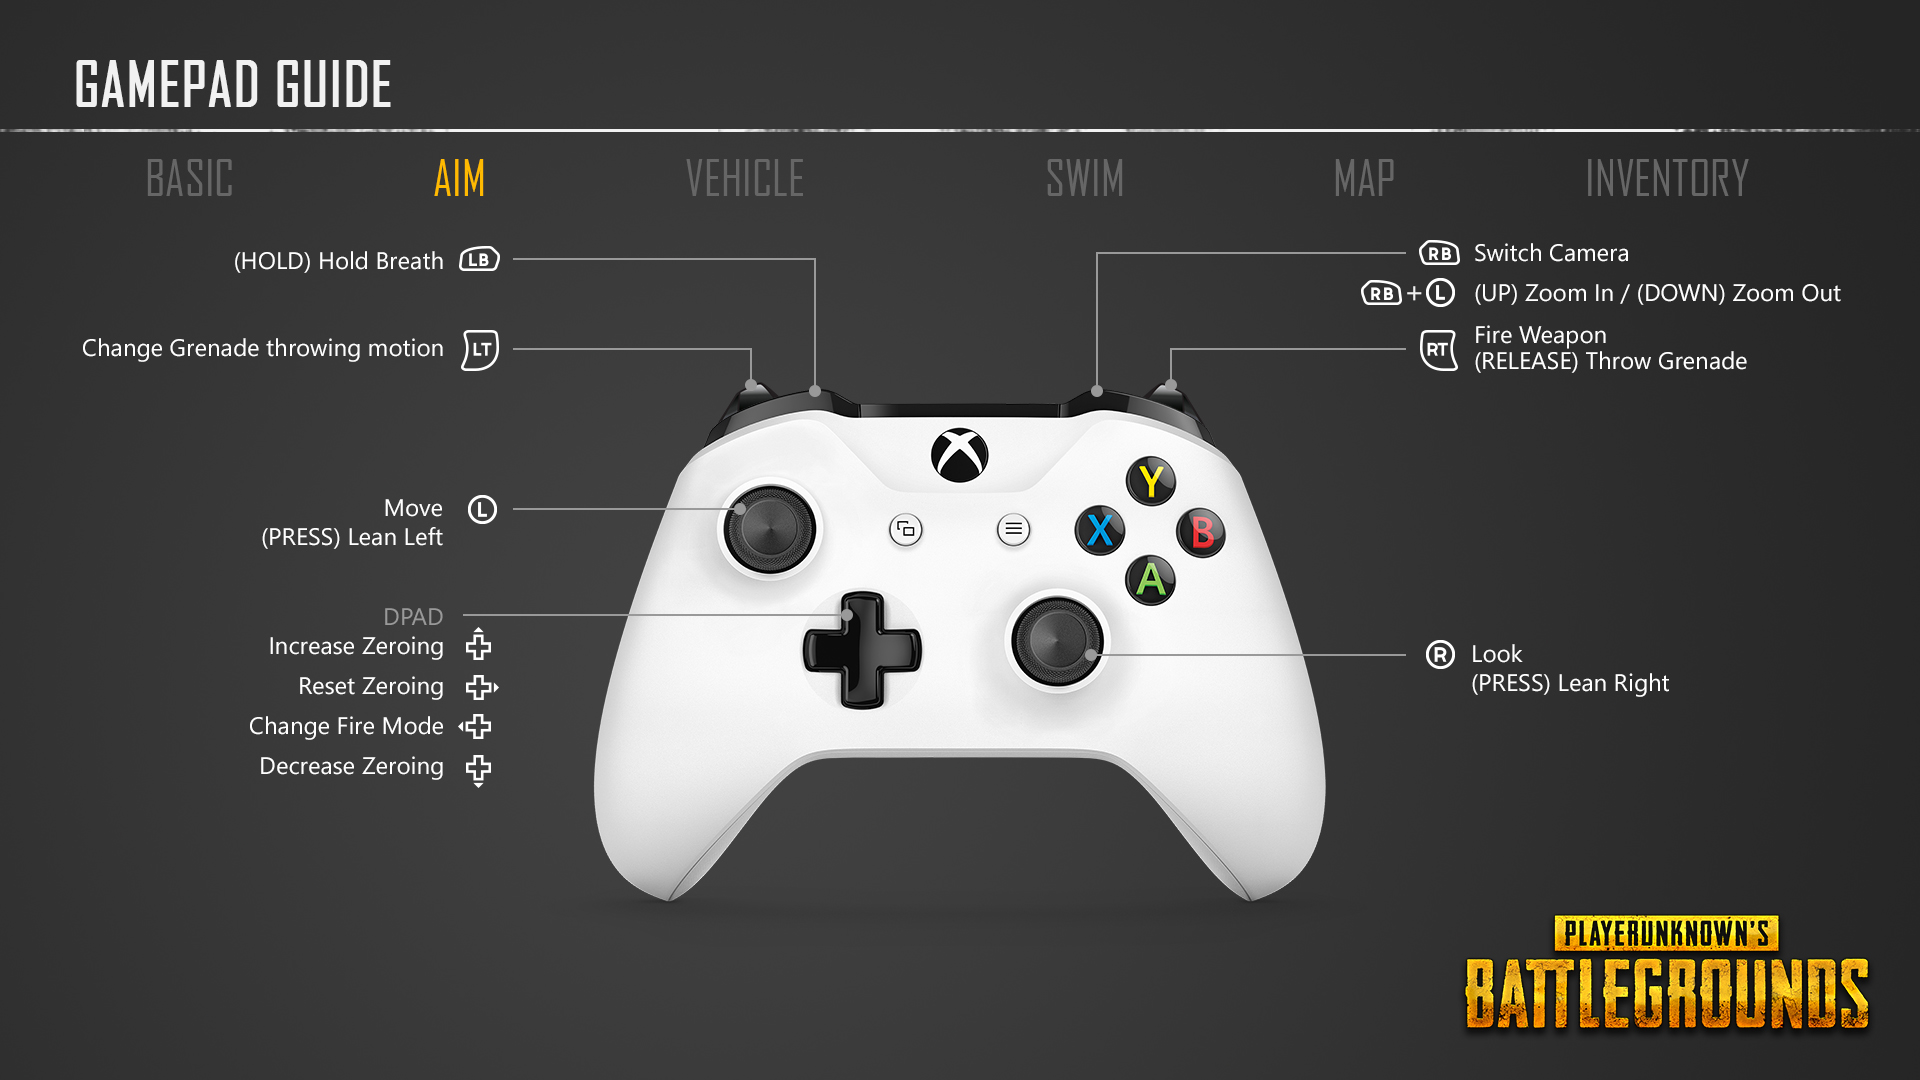 PlayerUnknowns Battlegrounds Controller Layout And Control Scheme Revealed